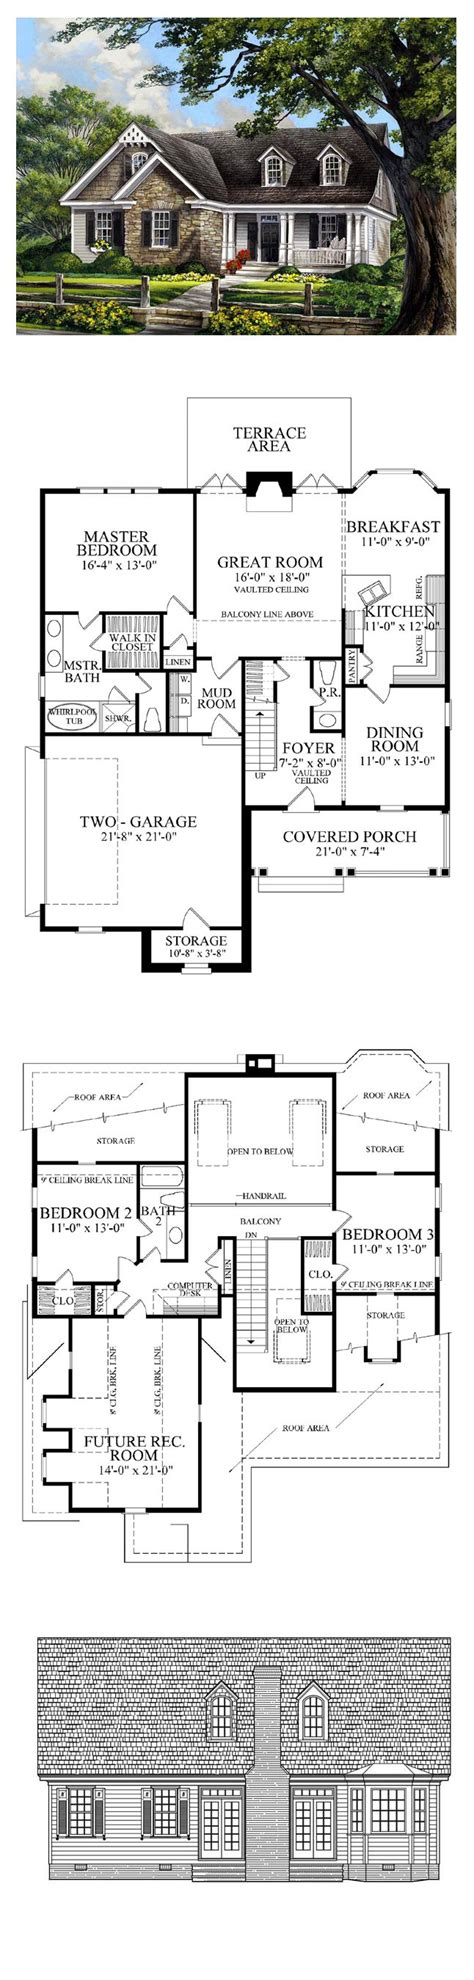 3 bedroom country house plans country ranch house plans floor and 3 bedroom plan simple interalle